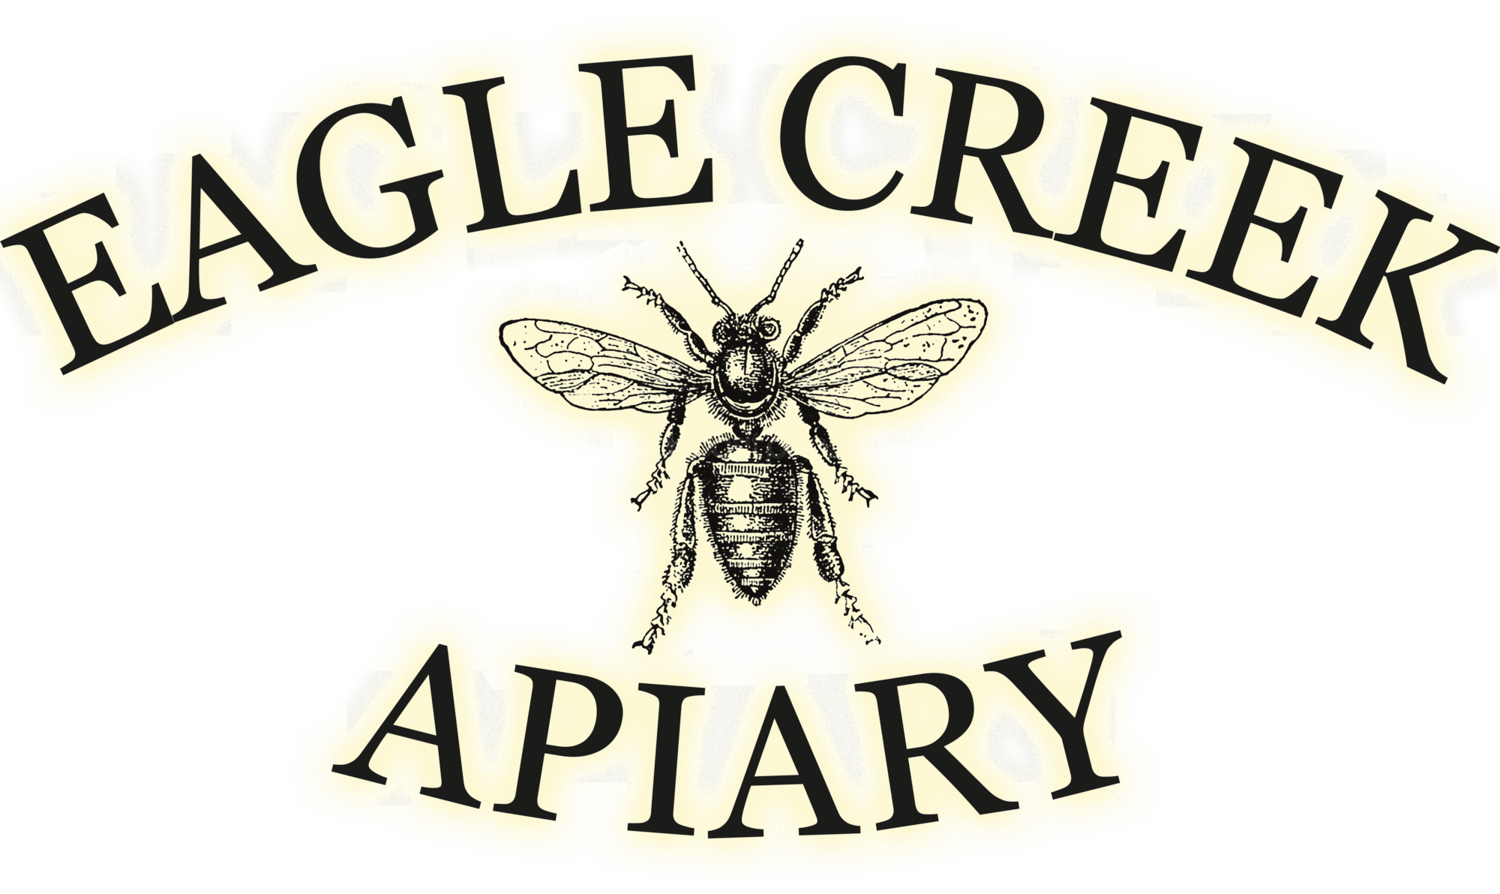 Eagle Creek Apiary